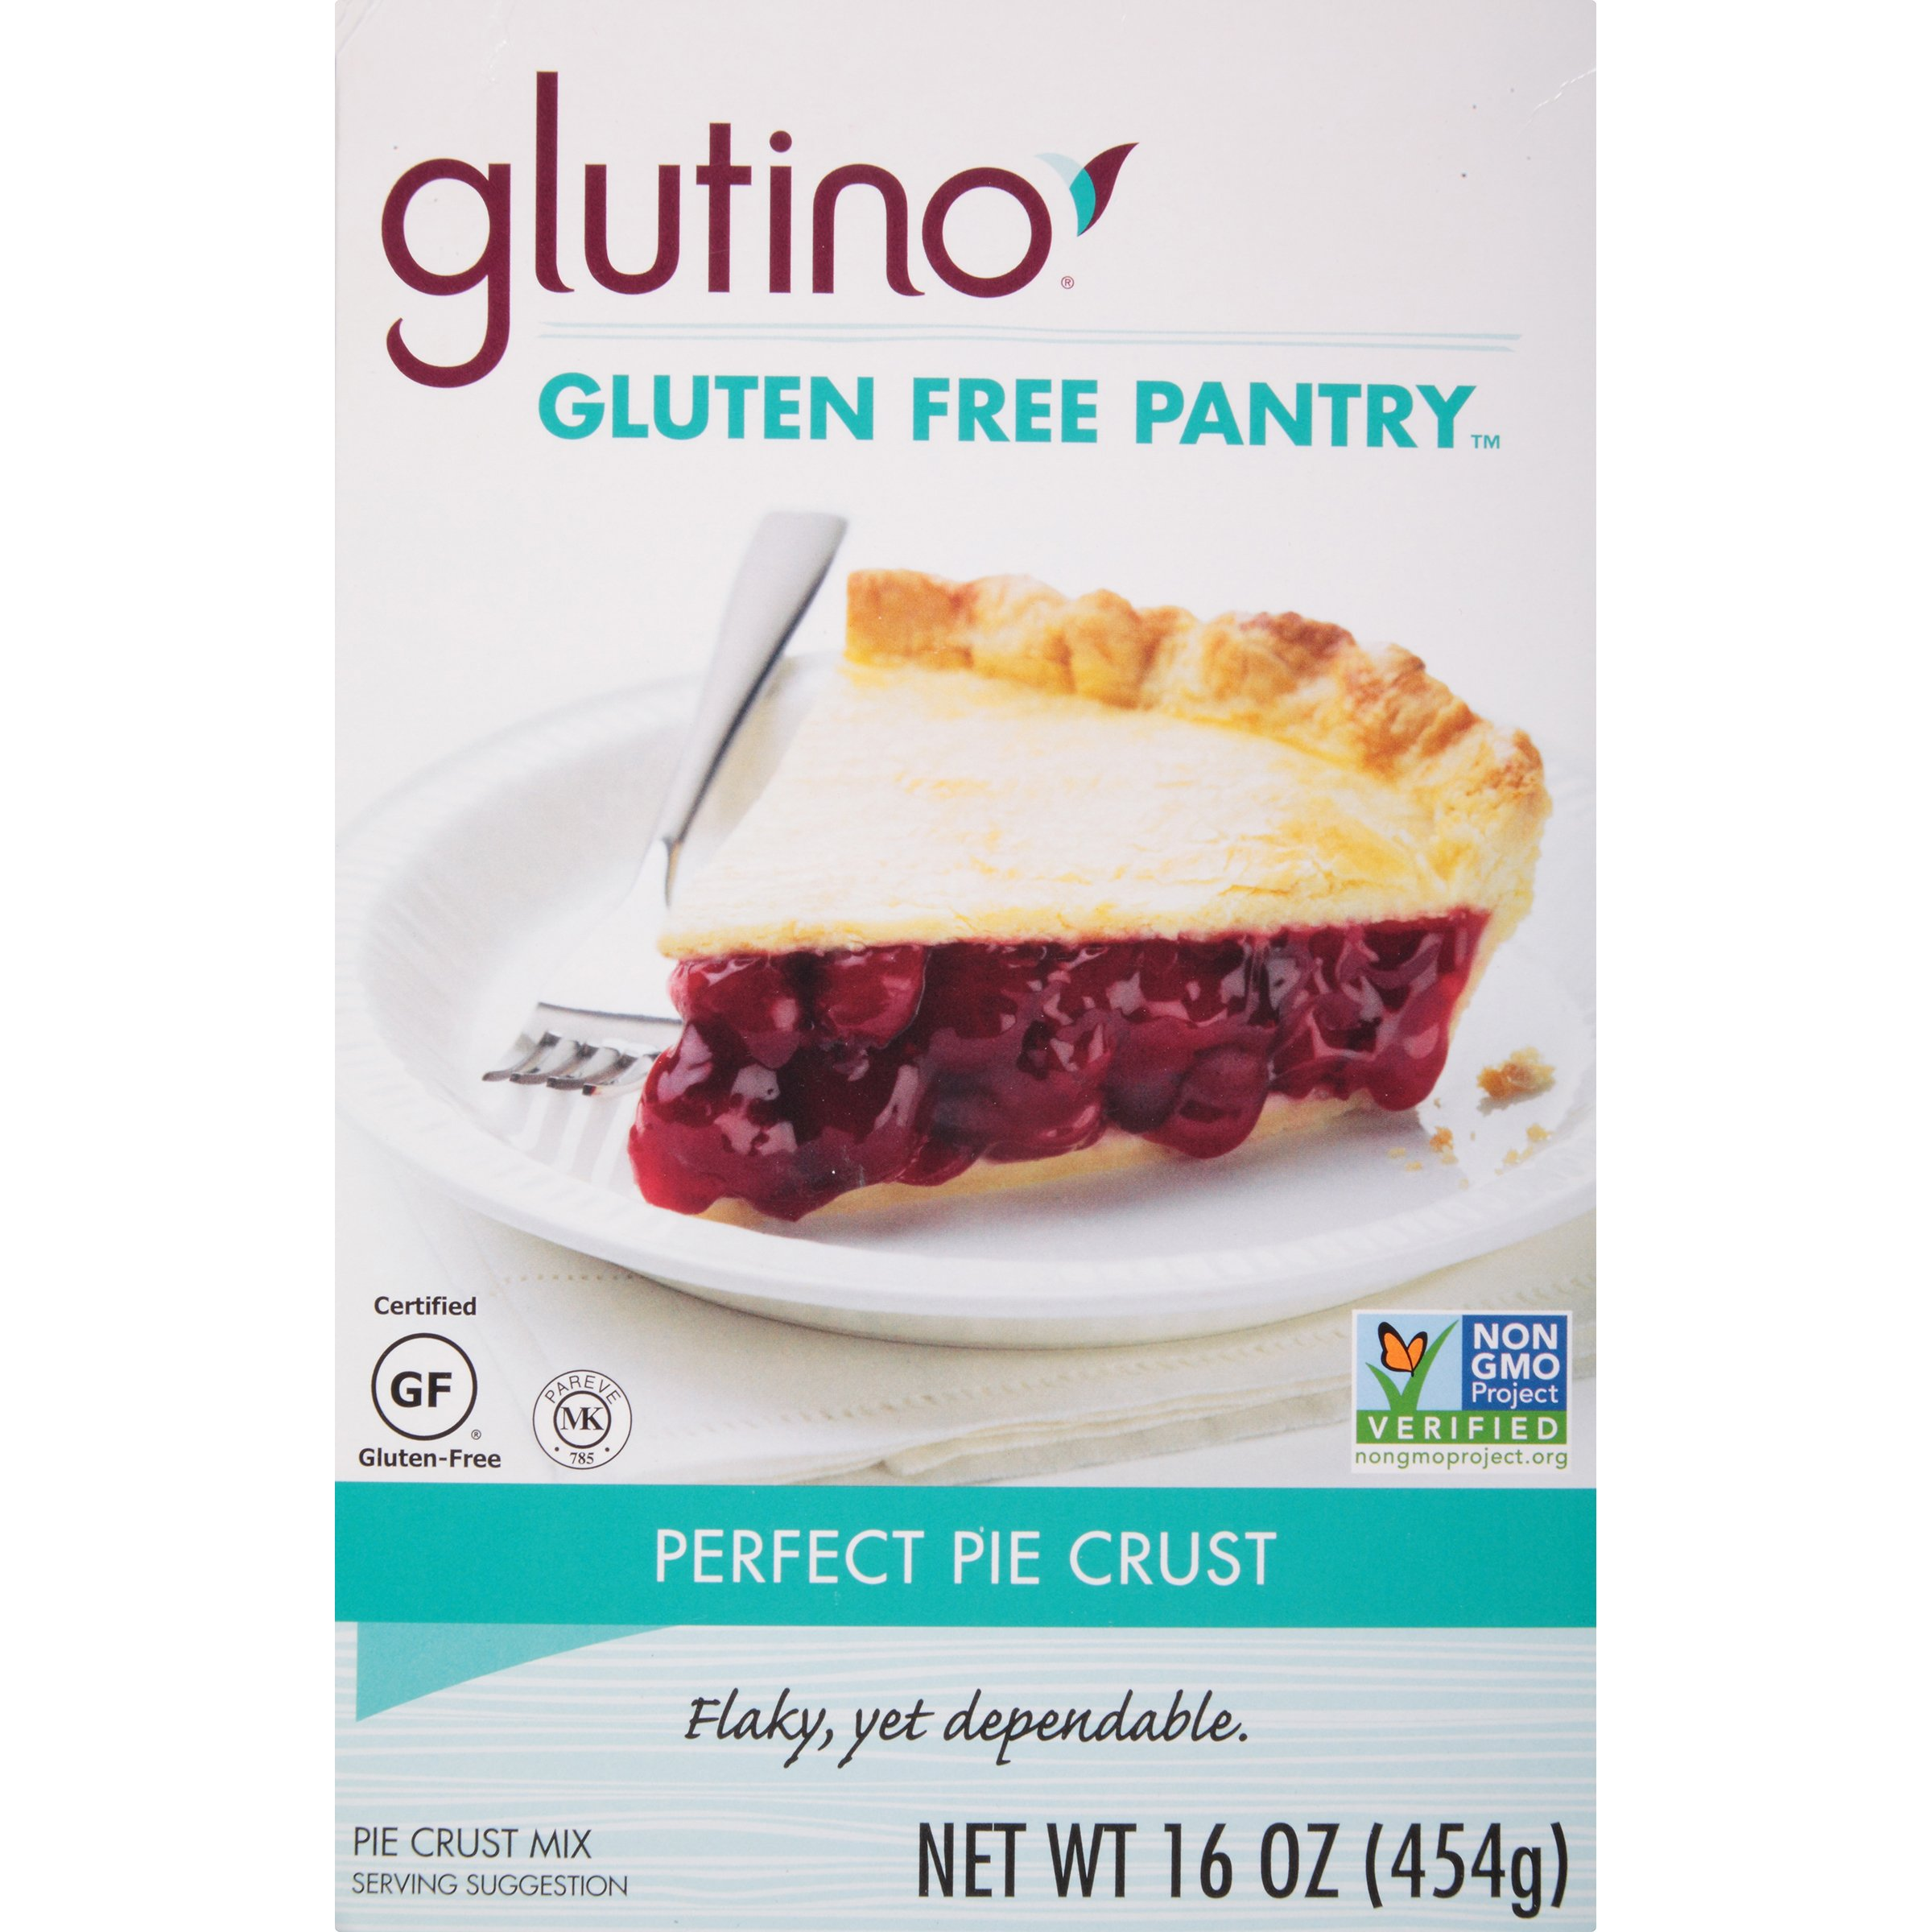 Glutino Gluten Free Pantry, Perfect Pie Crust Mix, Classic Flavor, 16 Ounce